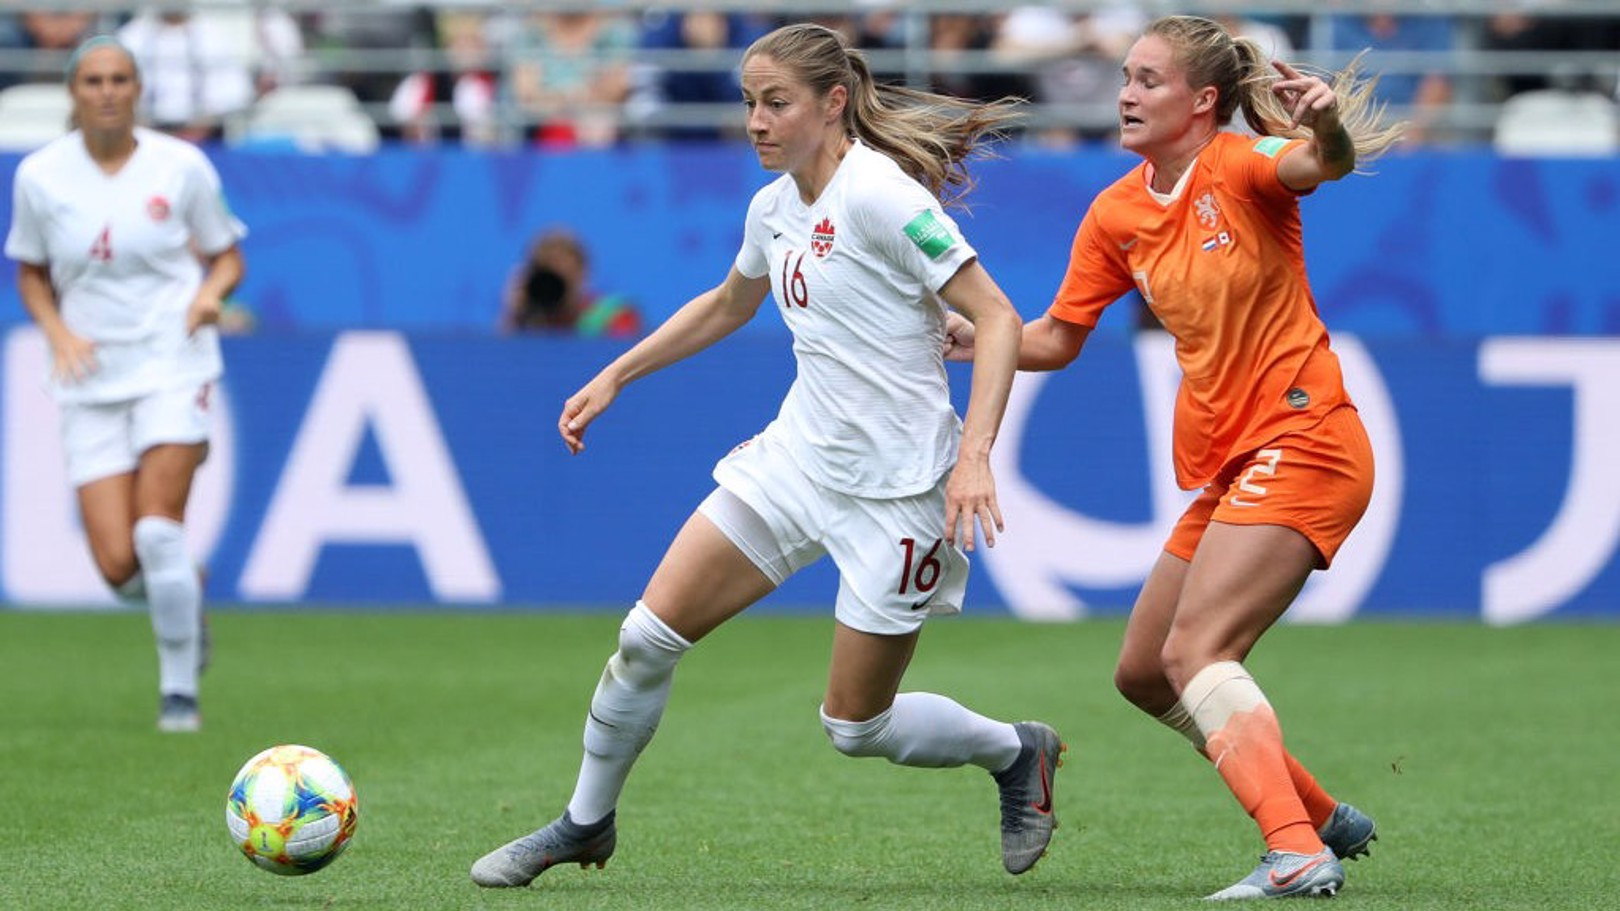 COLLISION: Janine Beckie was fouled by Desiree van Lunteren as Canada took on the Netherlands.